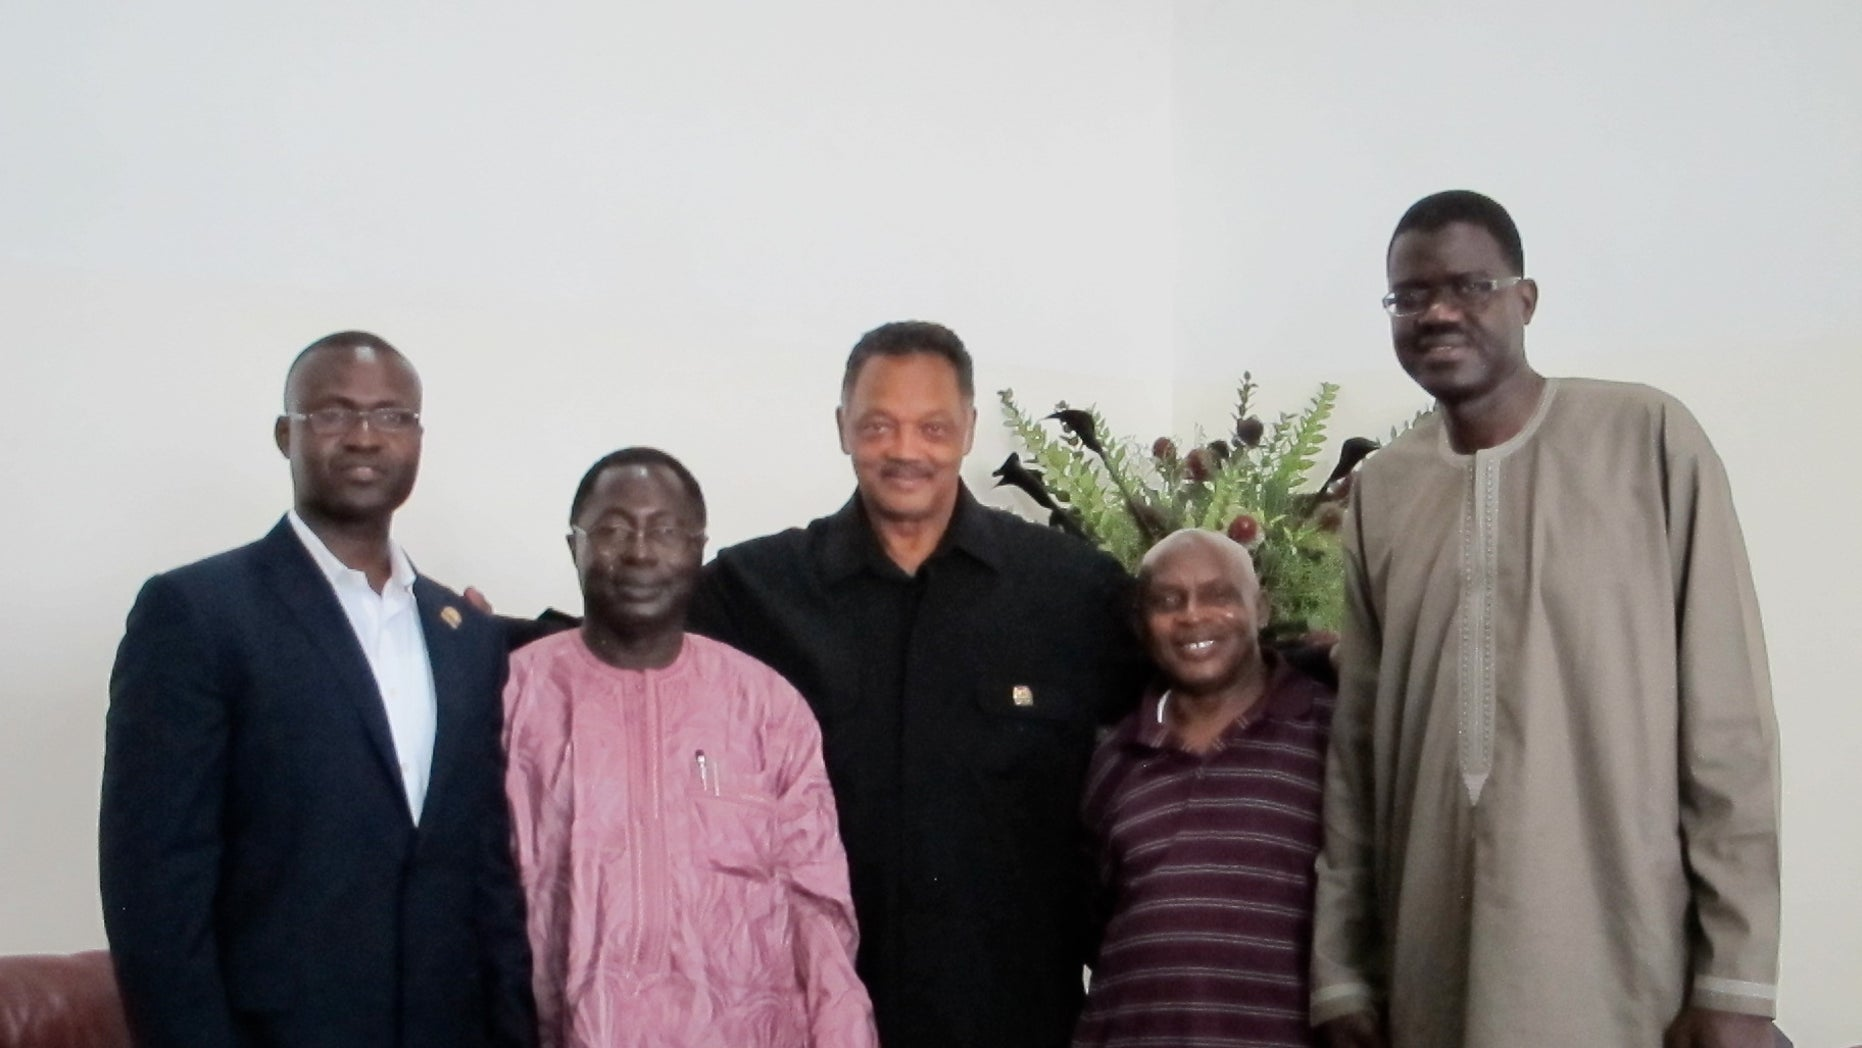 Rev. Jesse Jackson, Sr. pictured with Gambian officials.